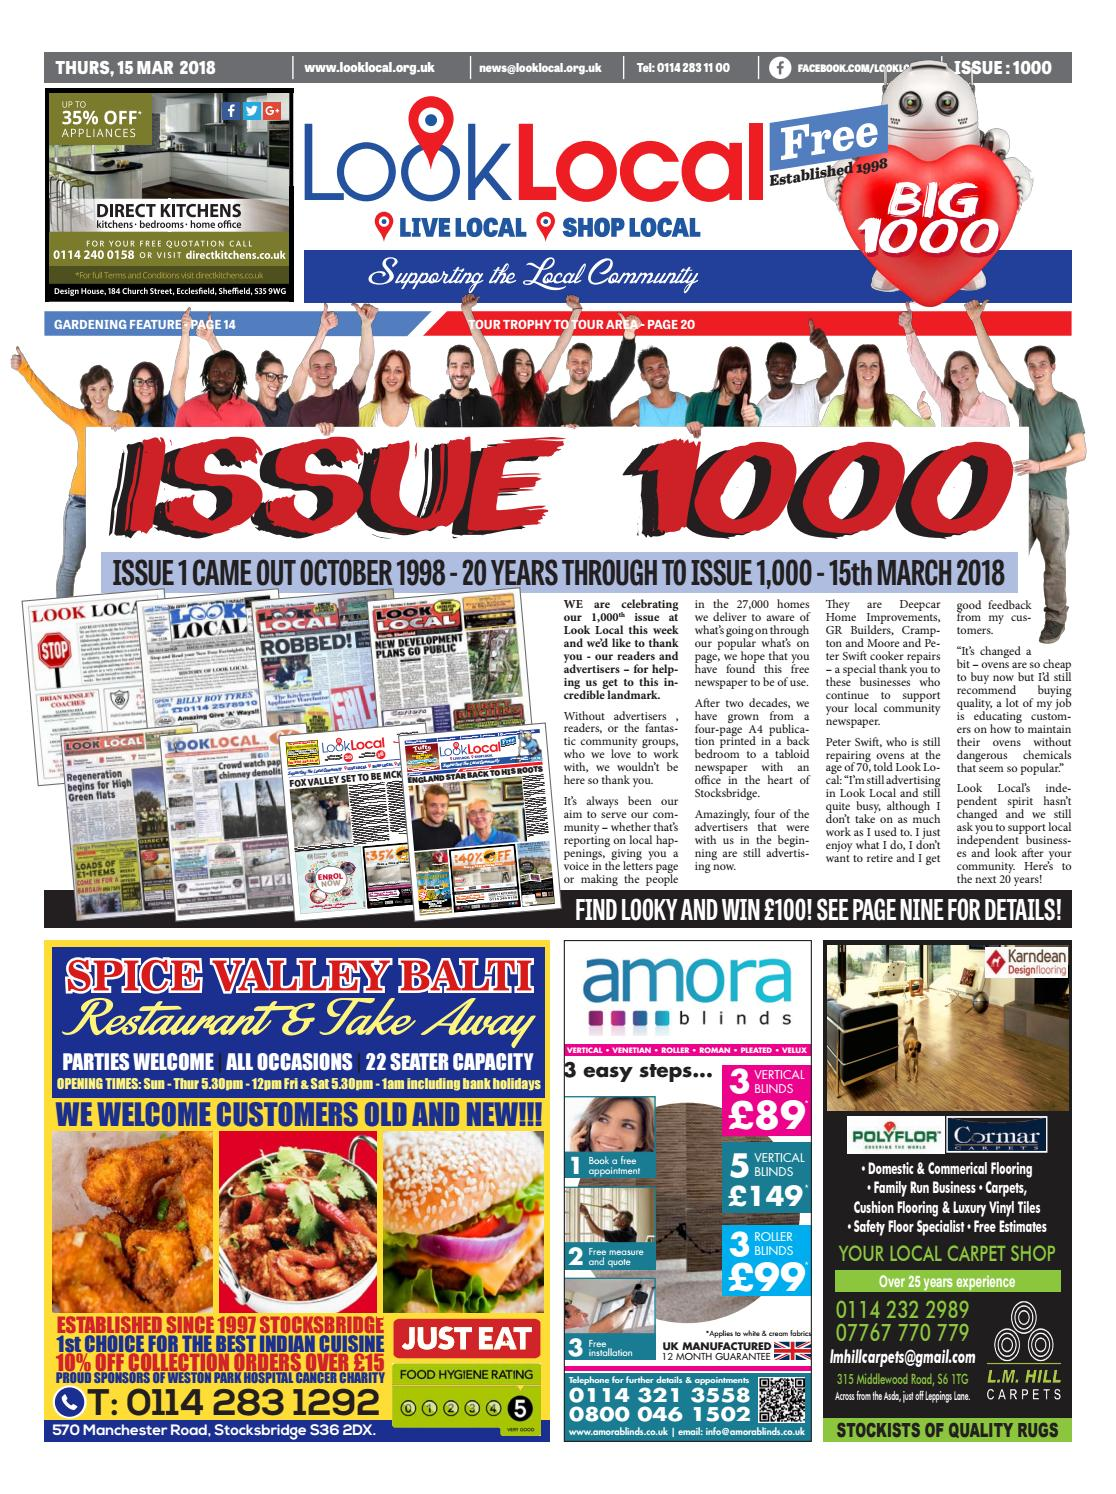 808c763f5d Issue 1000 Thursday 15 March 2018 by Look Local Newspaper - issuu